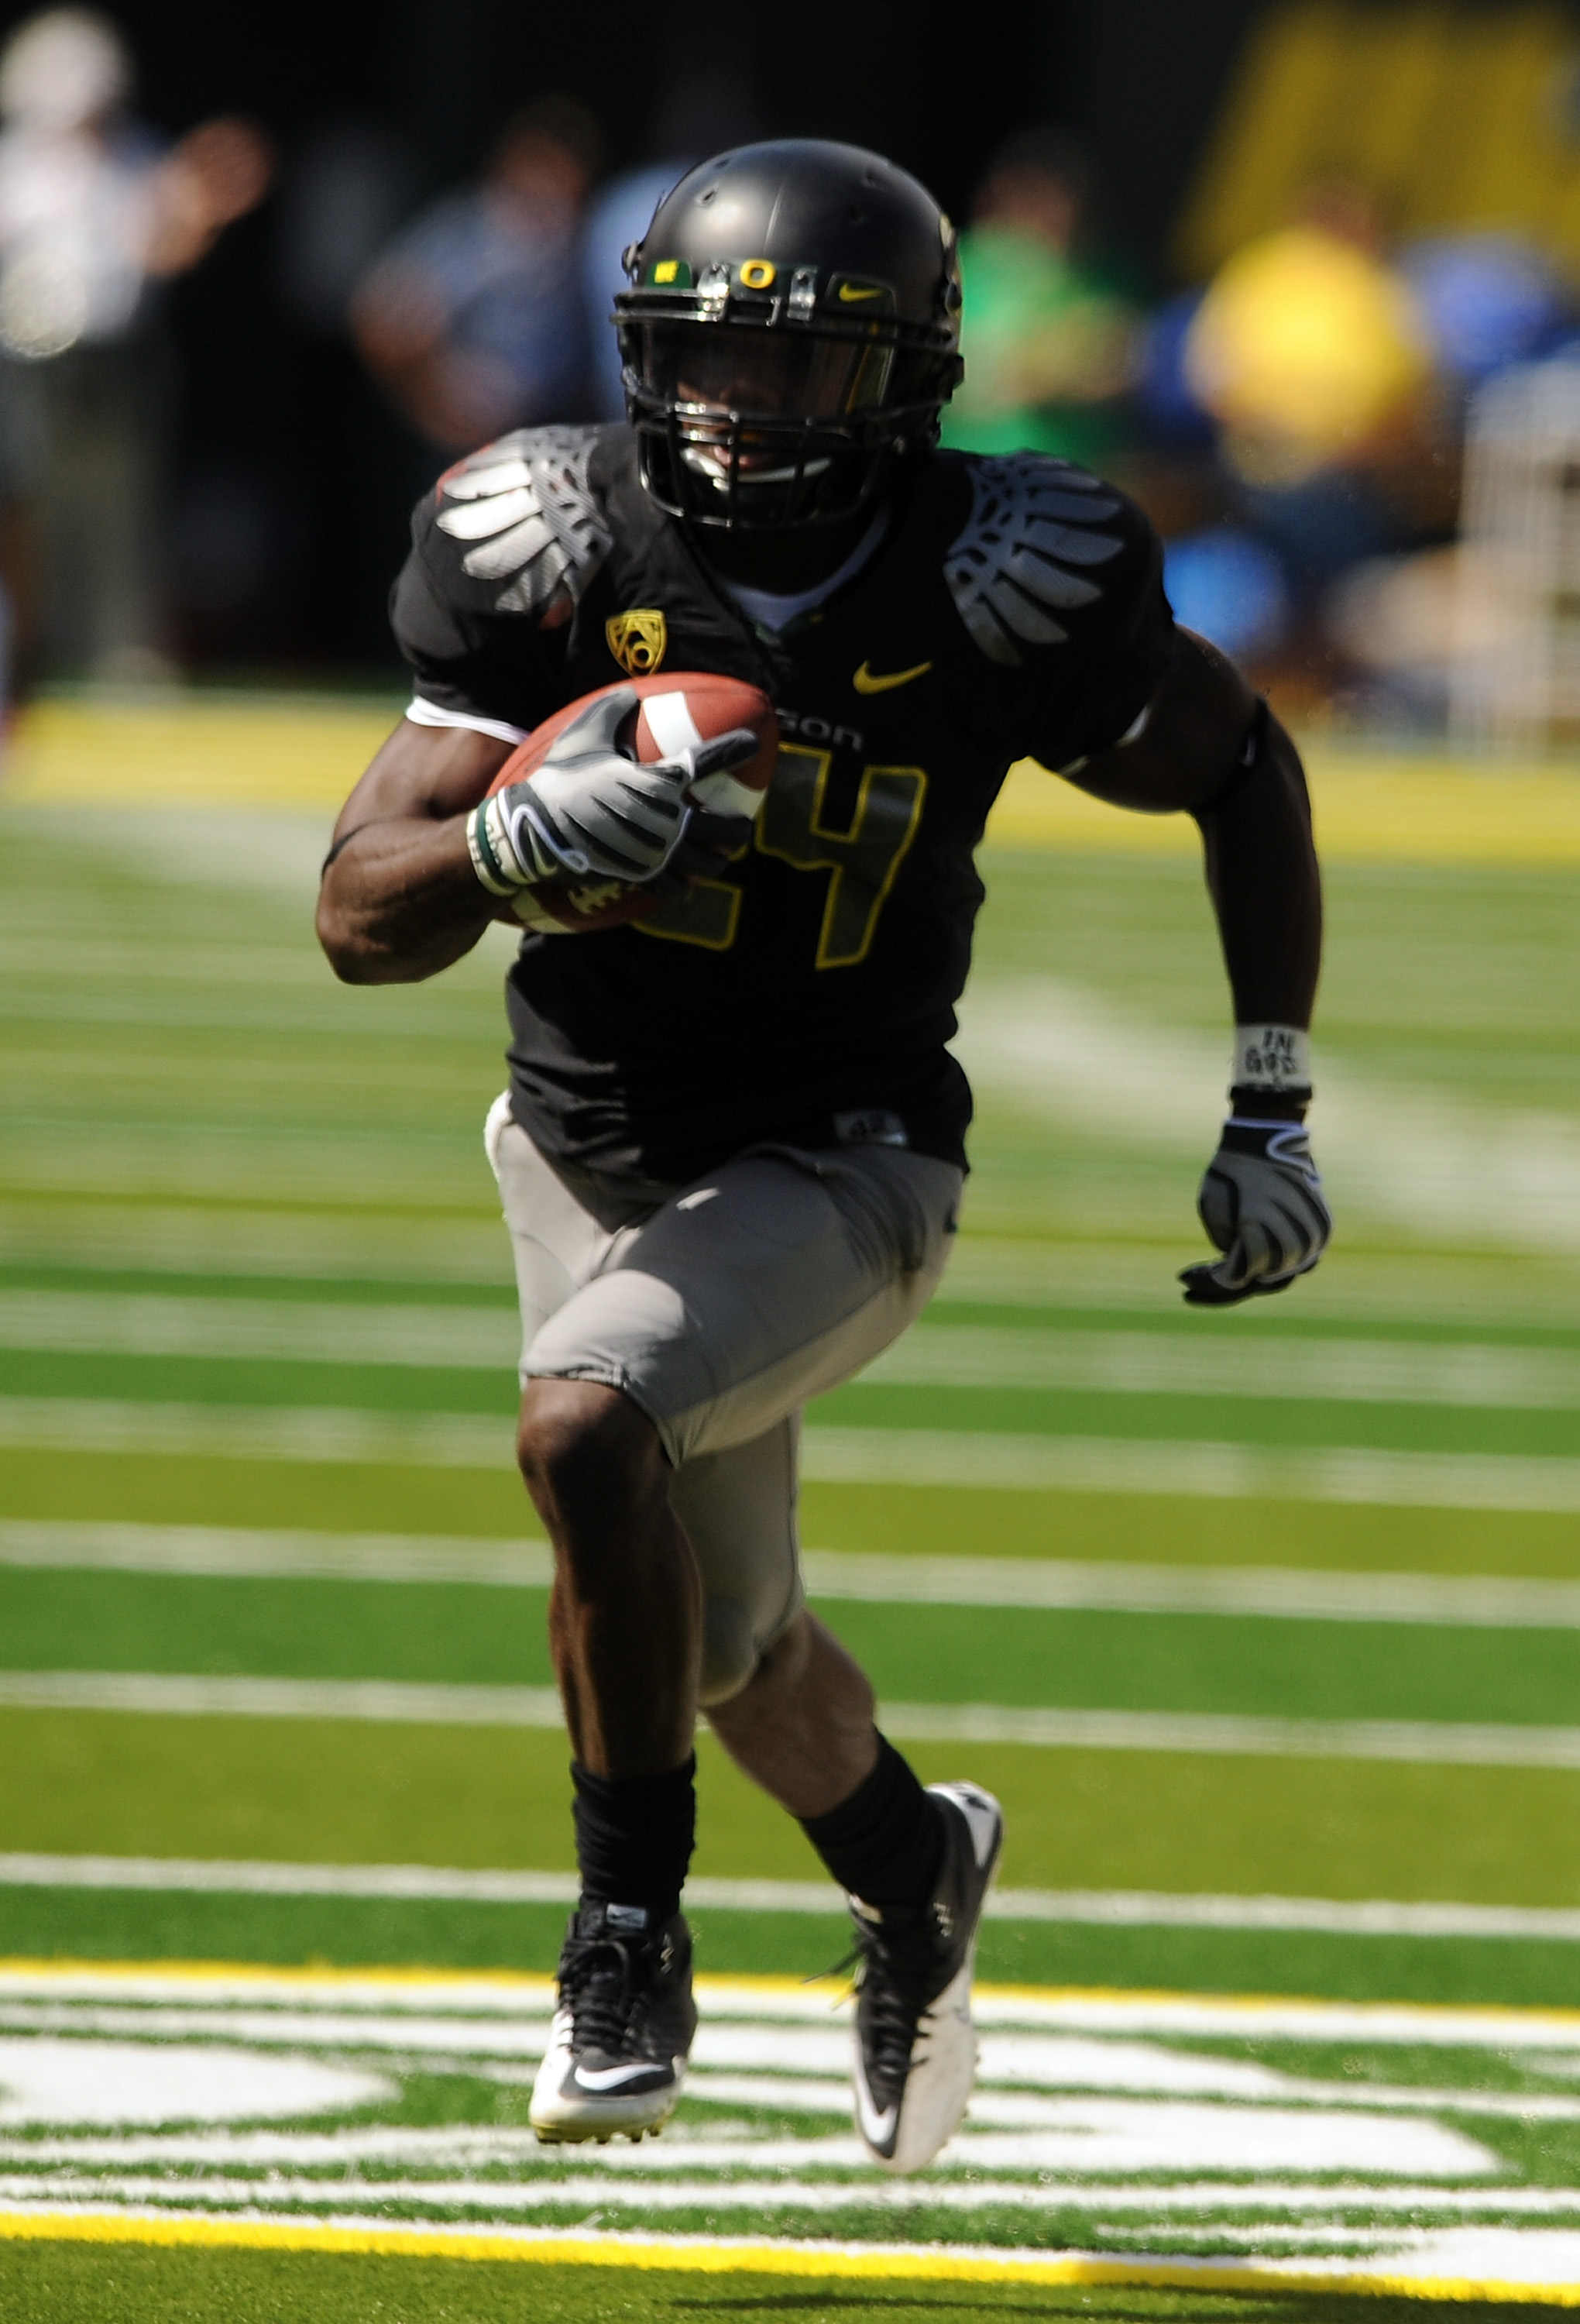 EUGENE, OR - SEPTEMBER 04: Running back Kenjon Barner #24 of the Oregon Ducks heads for the endzone and a touchdown in the second quarter of the game against the New Mexico Lobos at Autzen Stadium on September 4, 2010 in Eugene, Oregon. Barner had 225 tot